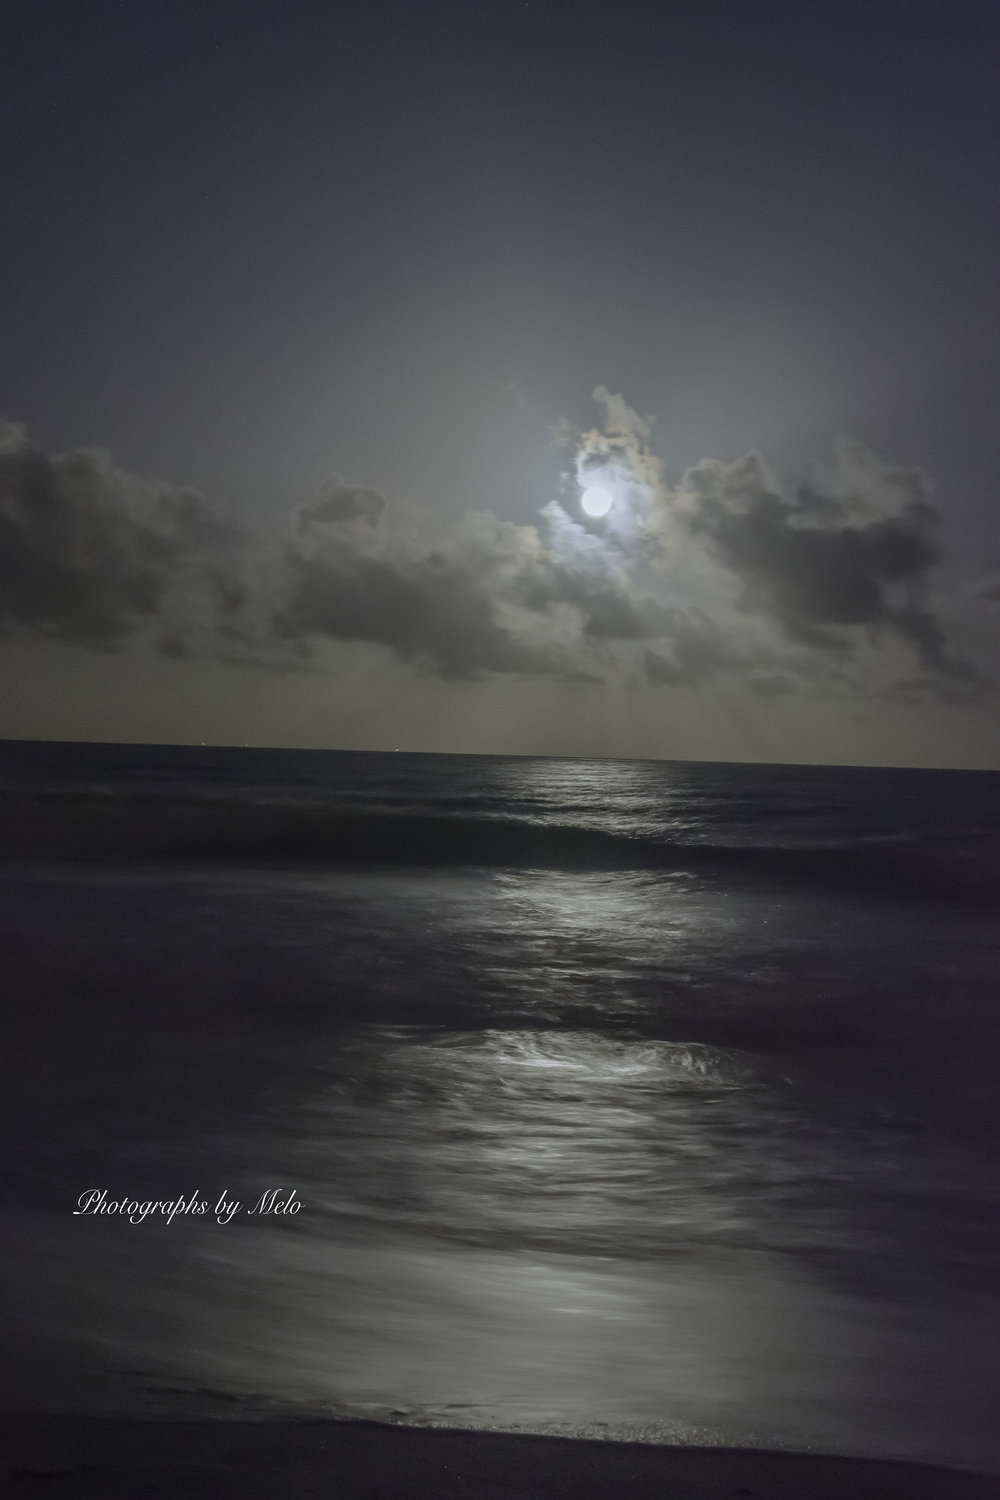 Full Moon at Cocoa Beach, Florida